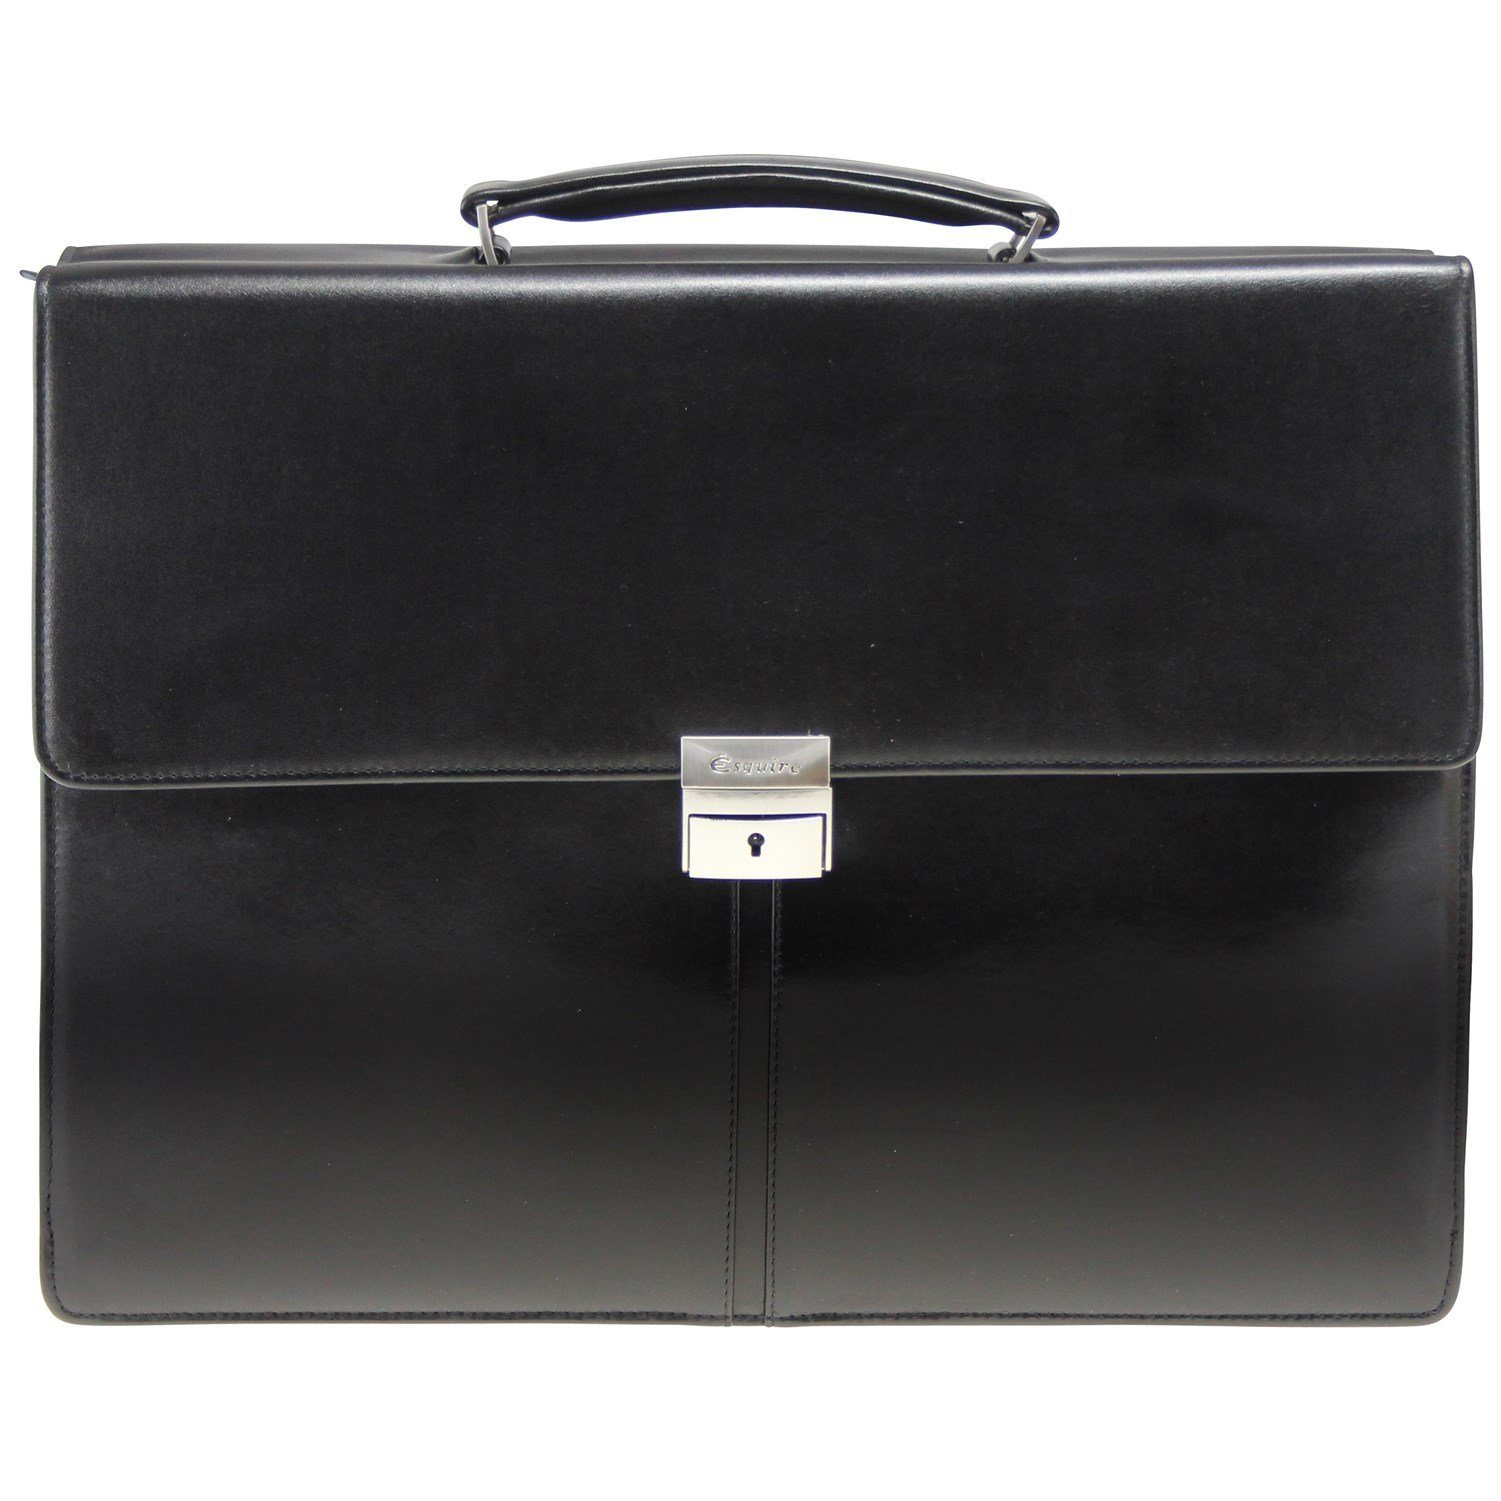 Esquire Business Aktentasche Leder 40 cm Laptopfach